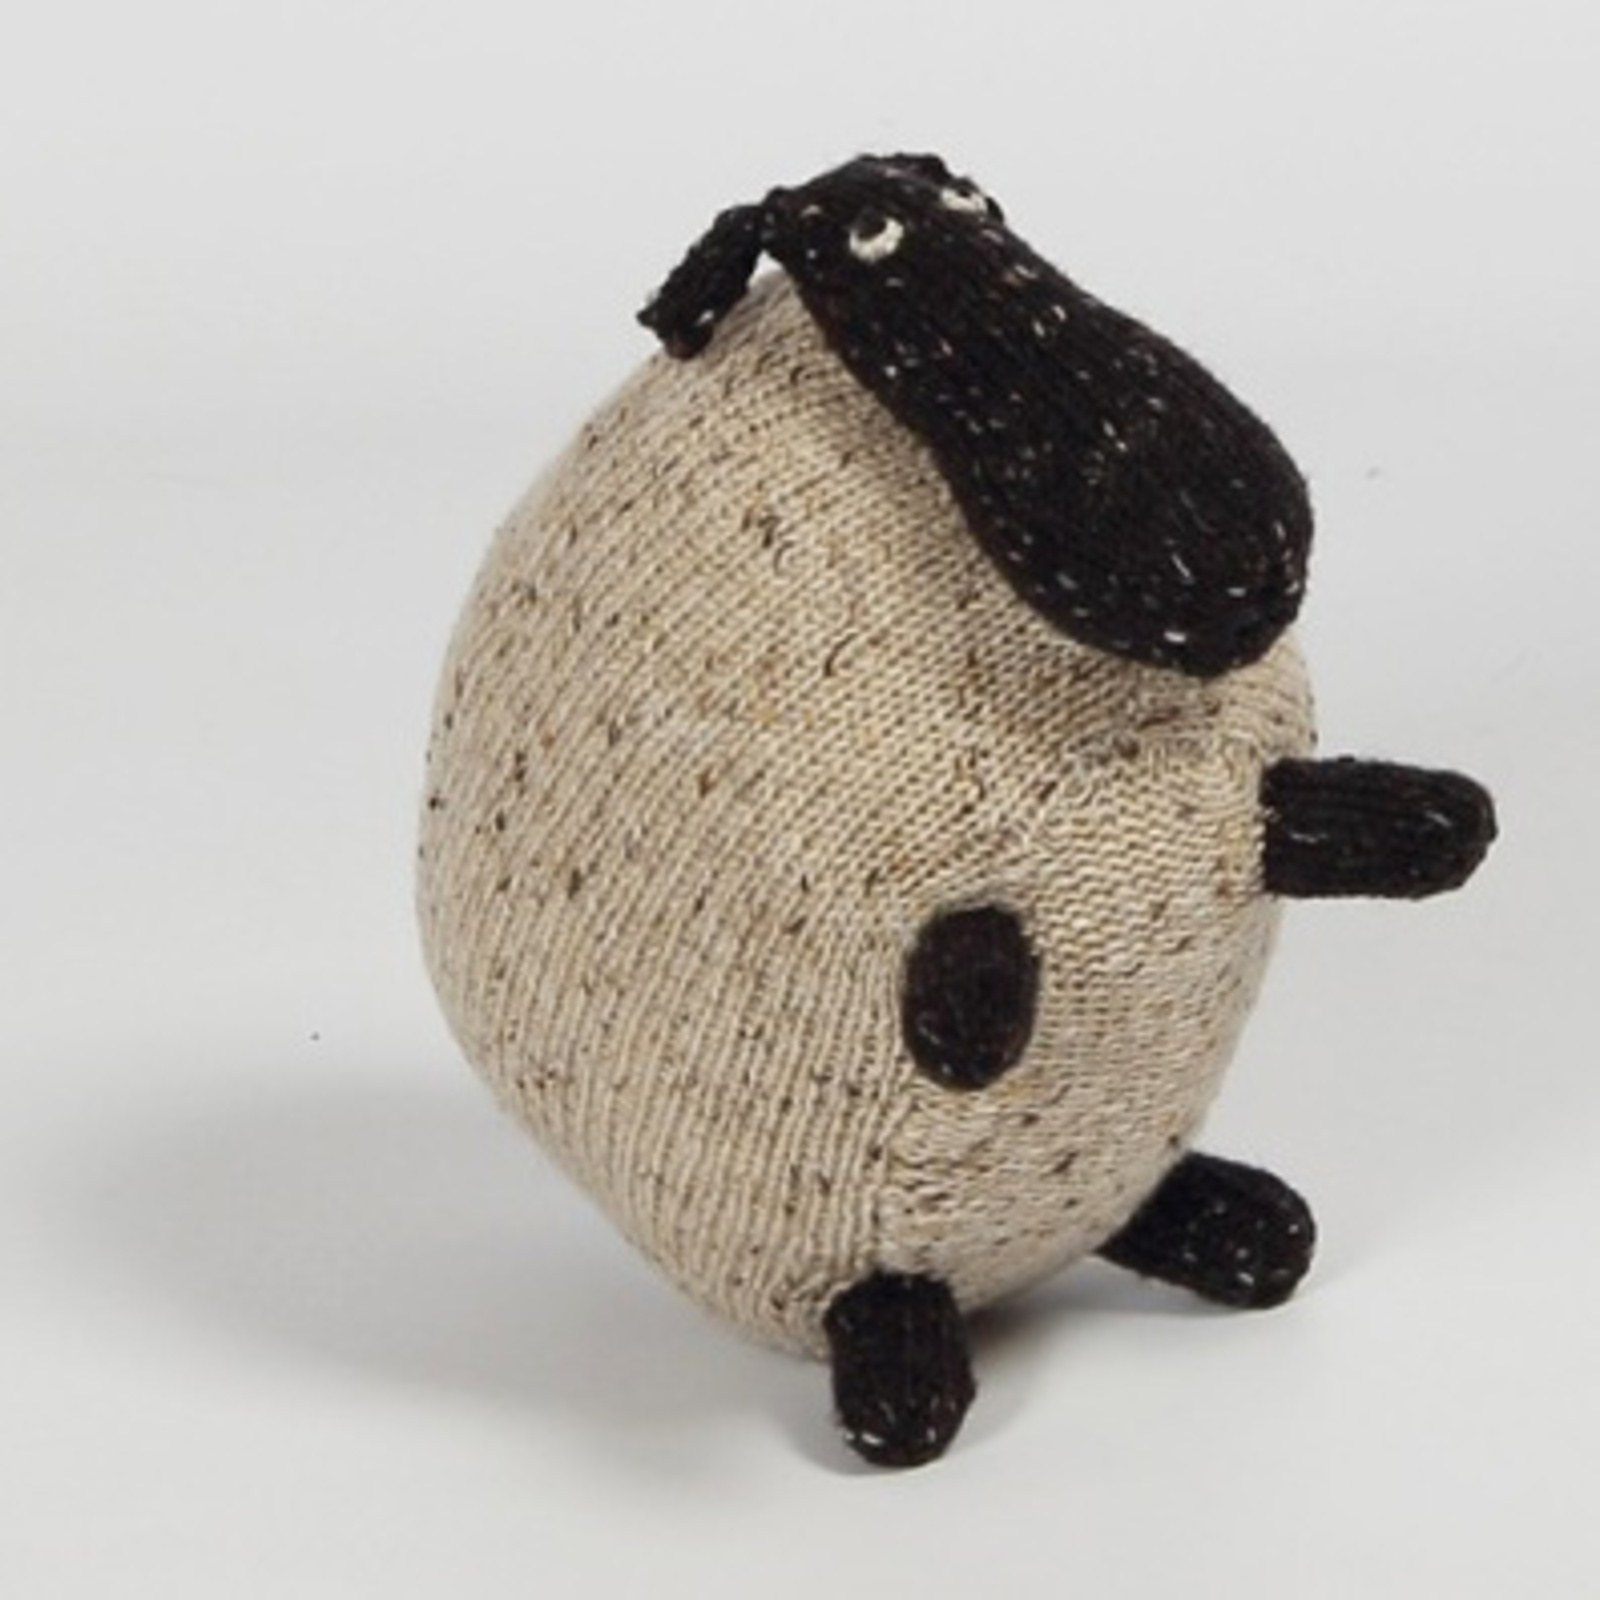 claireanne obriens knit creatures cool hunting